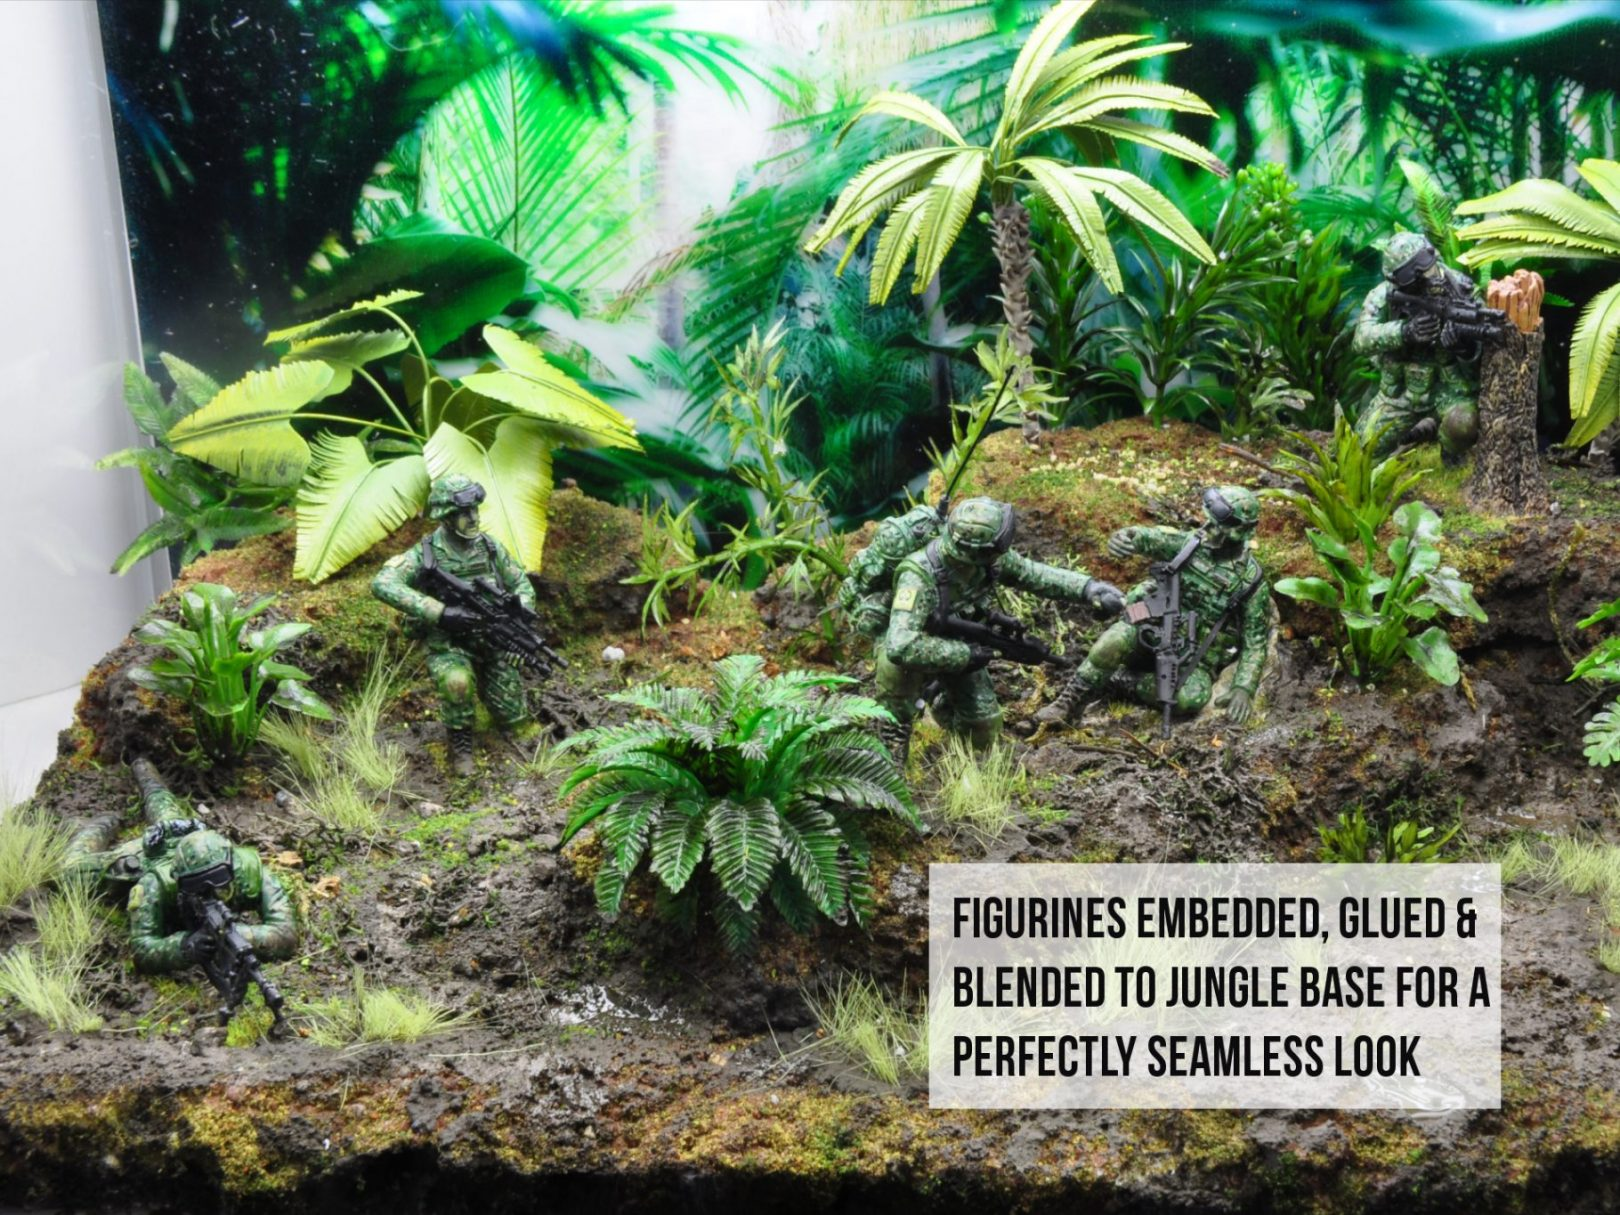 Miniature Stories Diorama with figurines glued down and blended into jungle ground